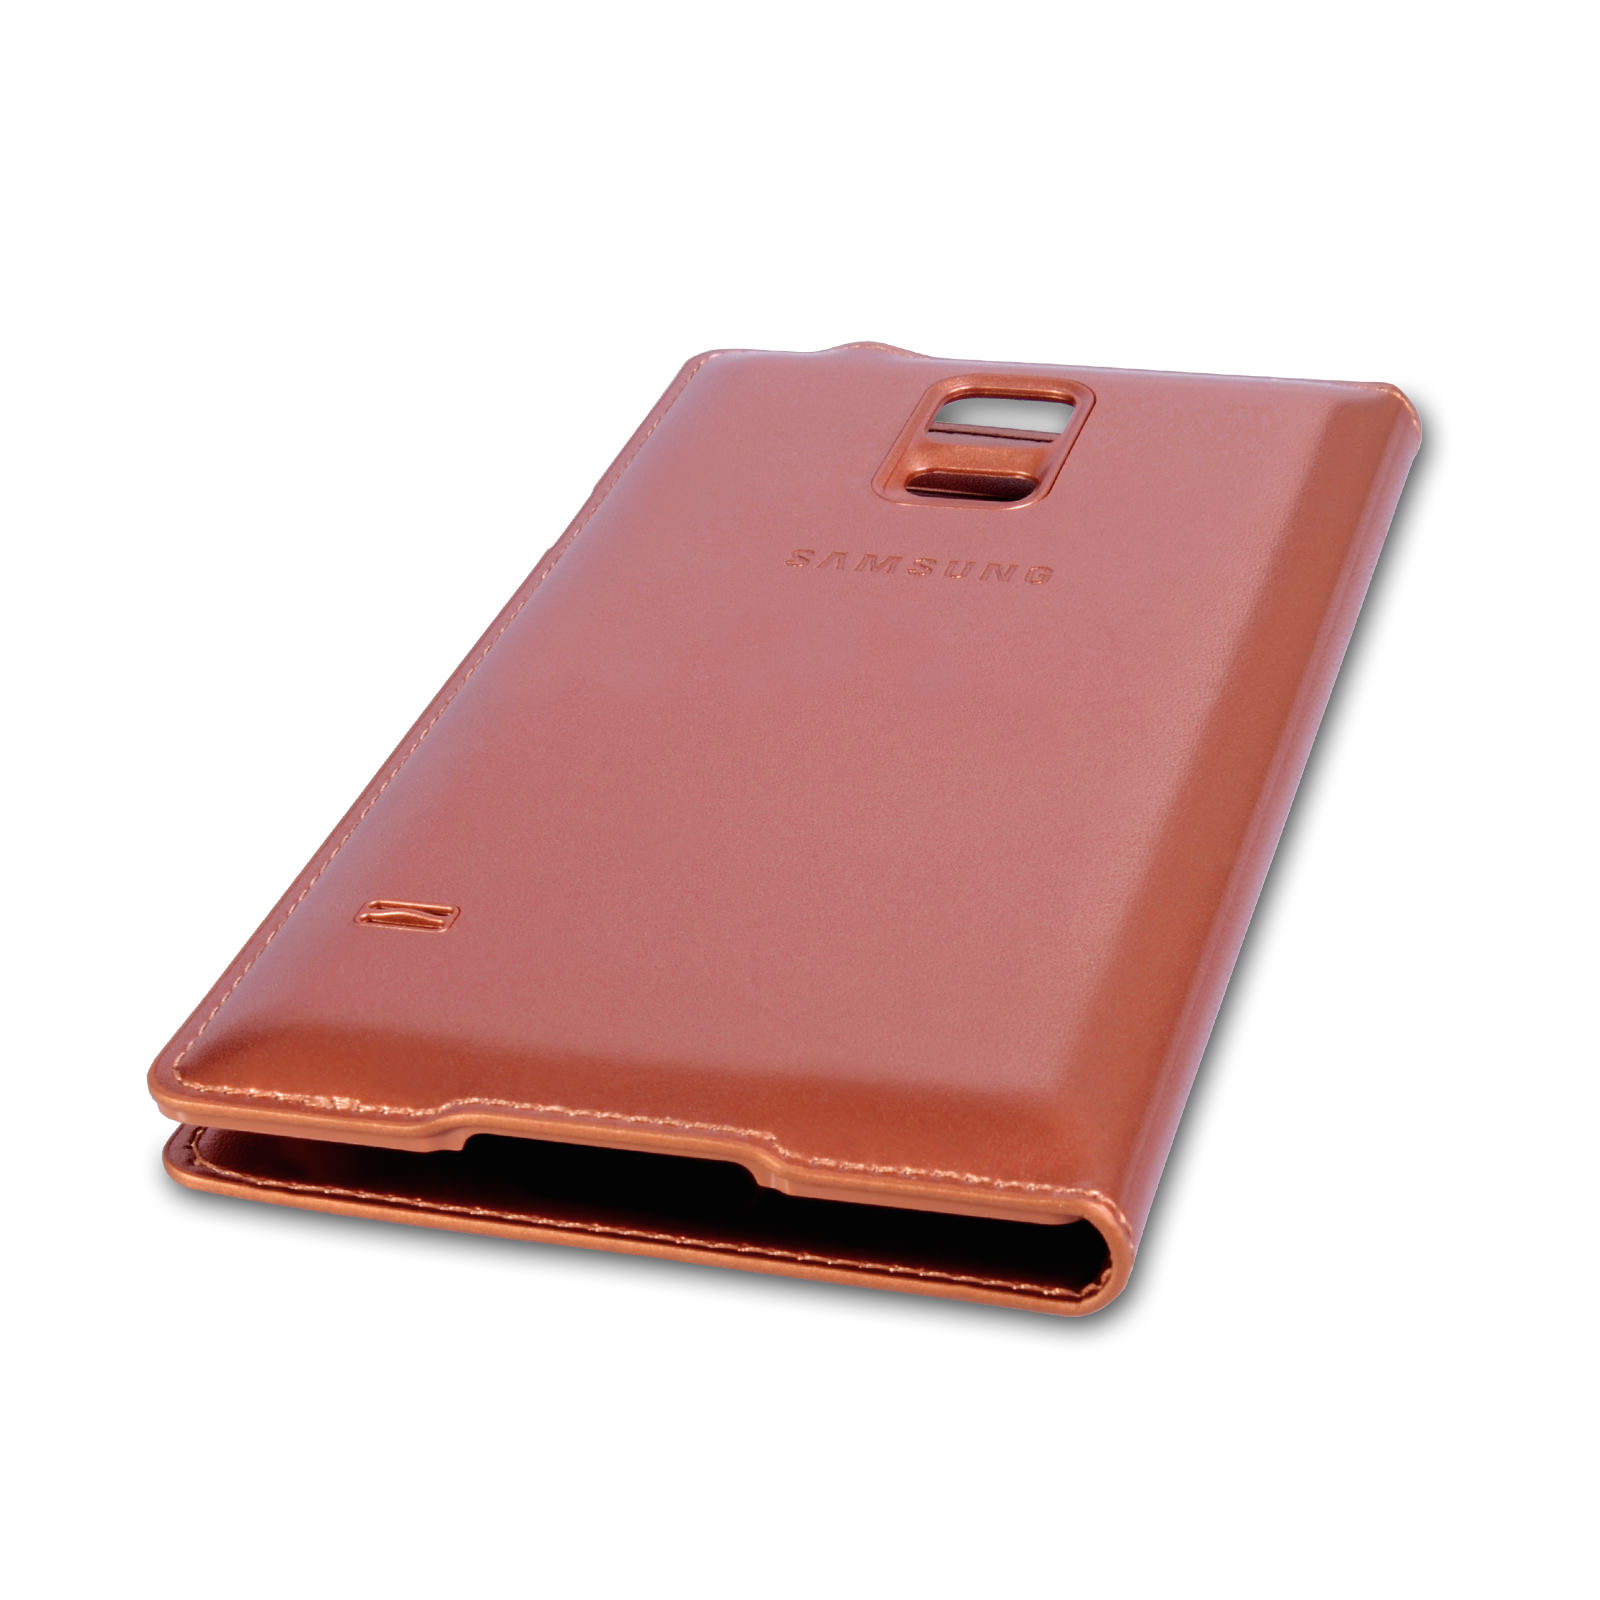 Official Samsung Galaxy S5 S View Cover - Rose Gold